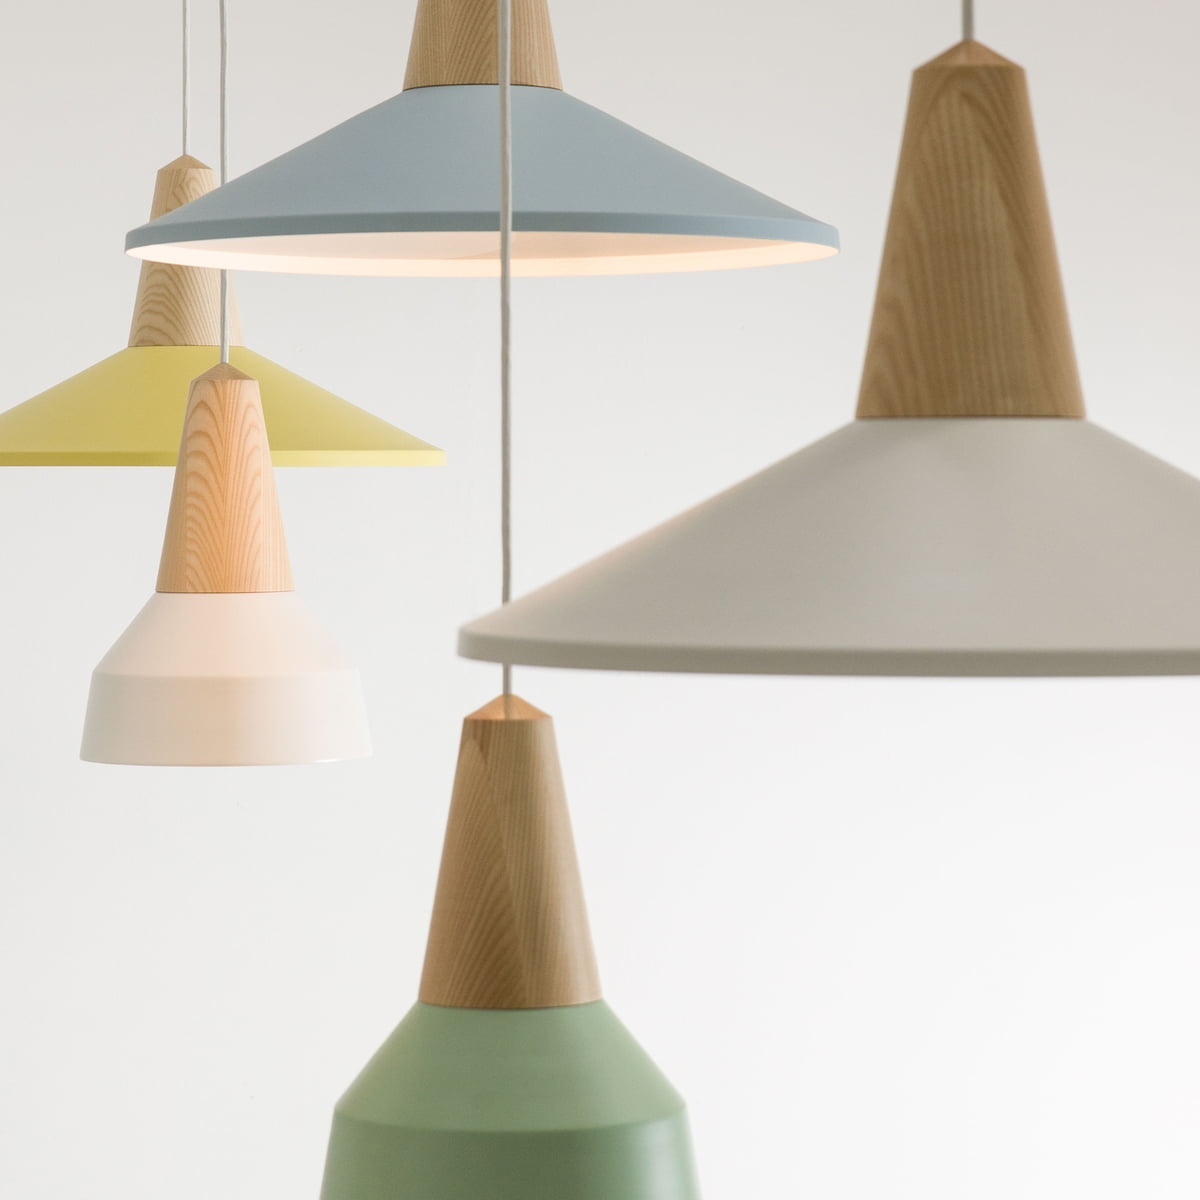 The Eikon Basic Pendant Lamp by Schneid